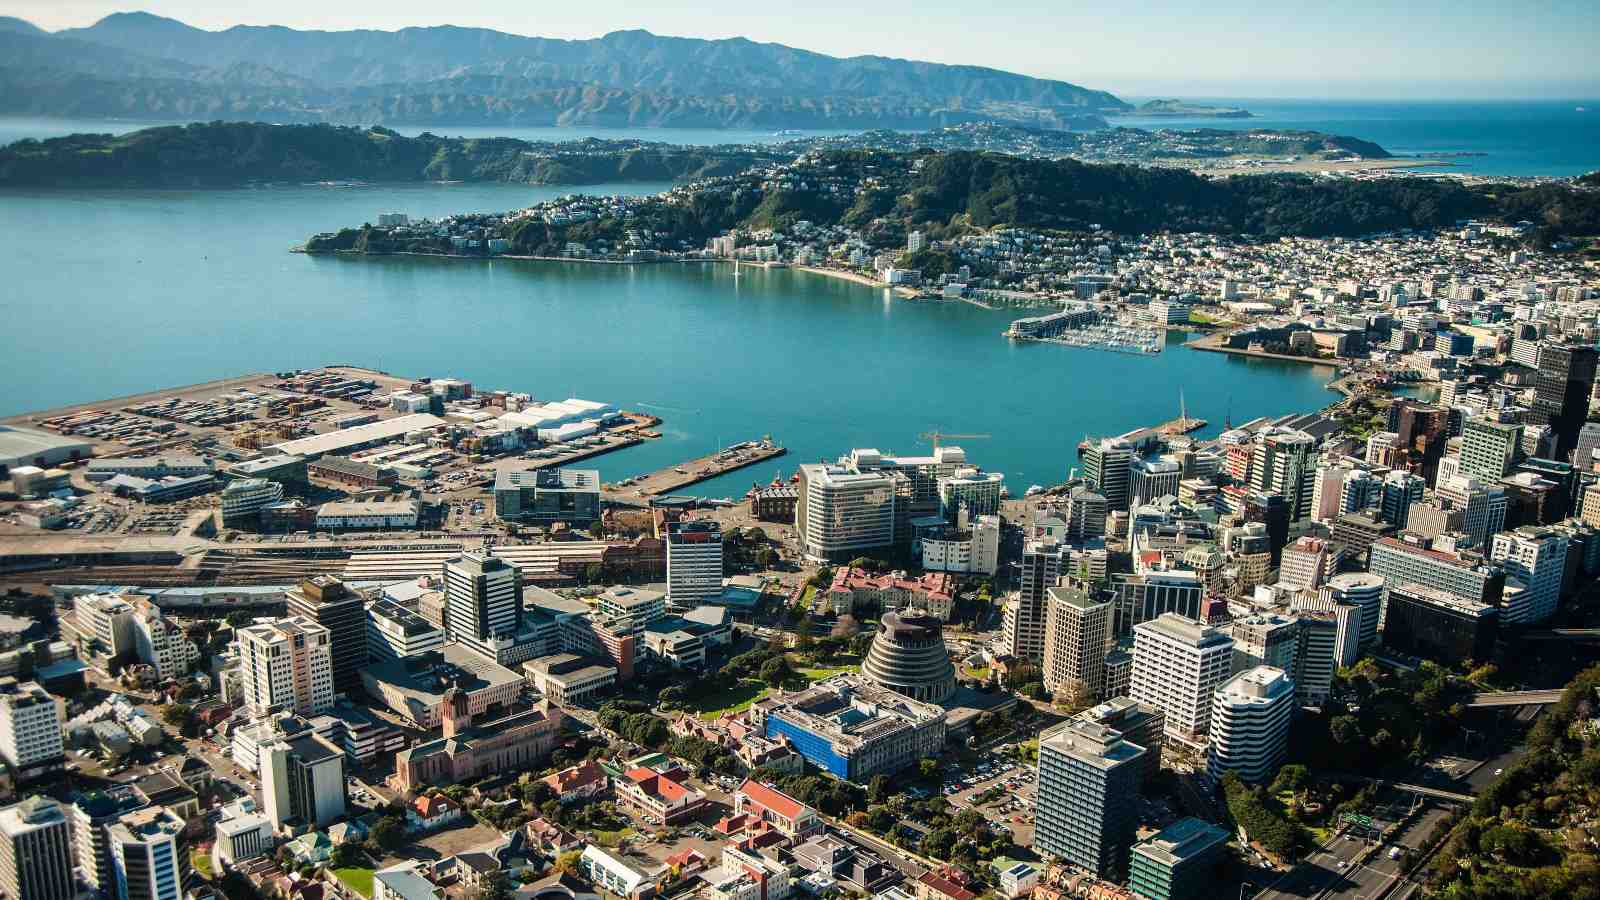 New Zealand Shooting Video Wallpaper: Is The Wellington City Council Neglecting Education